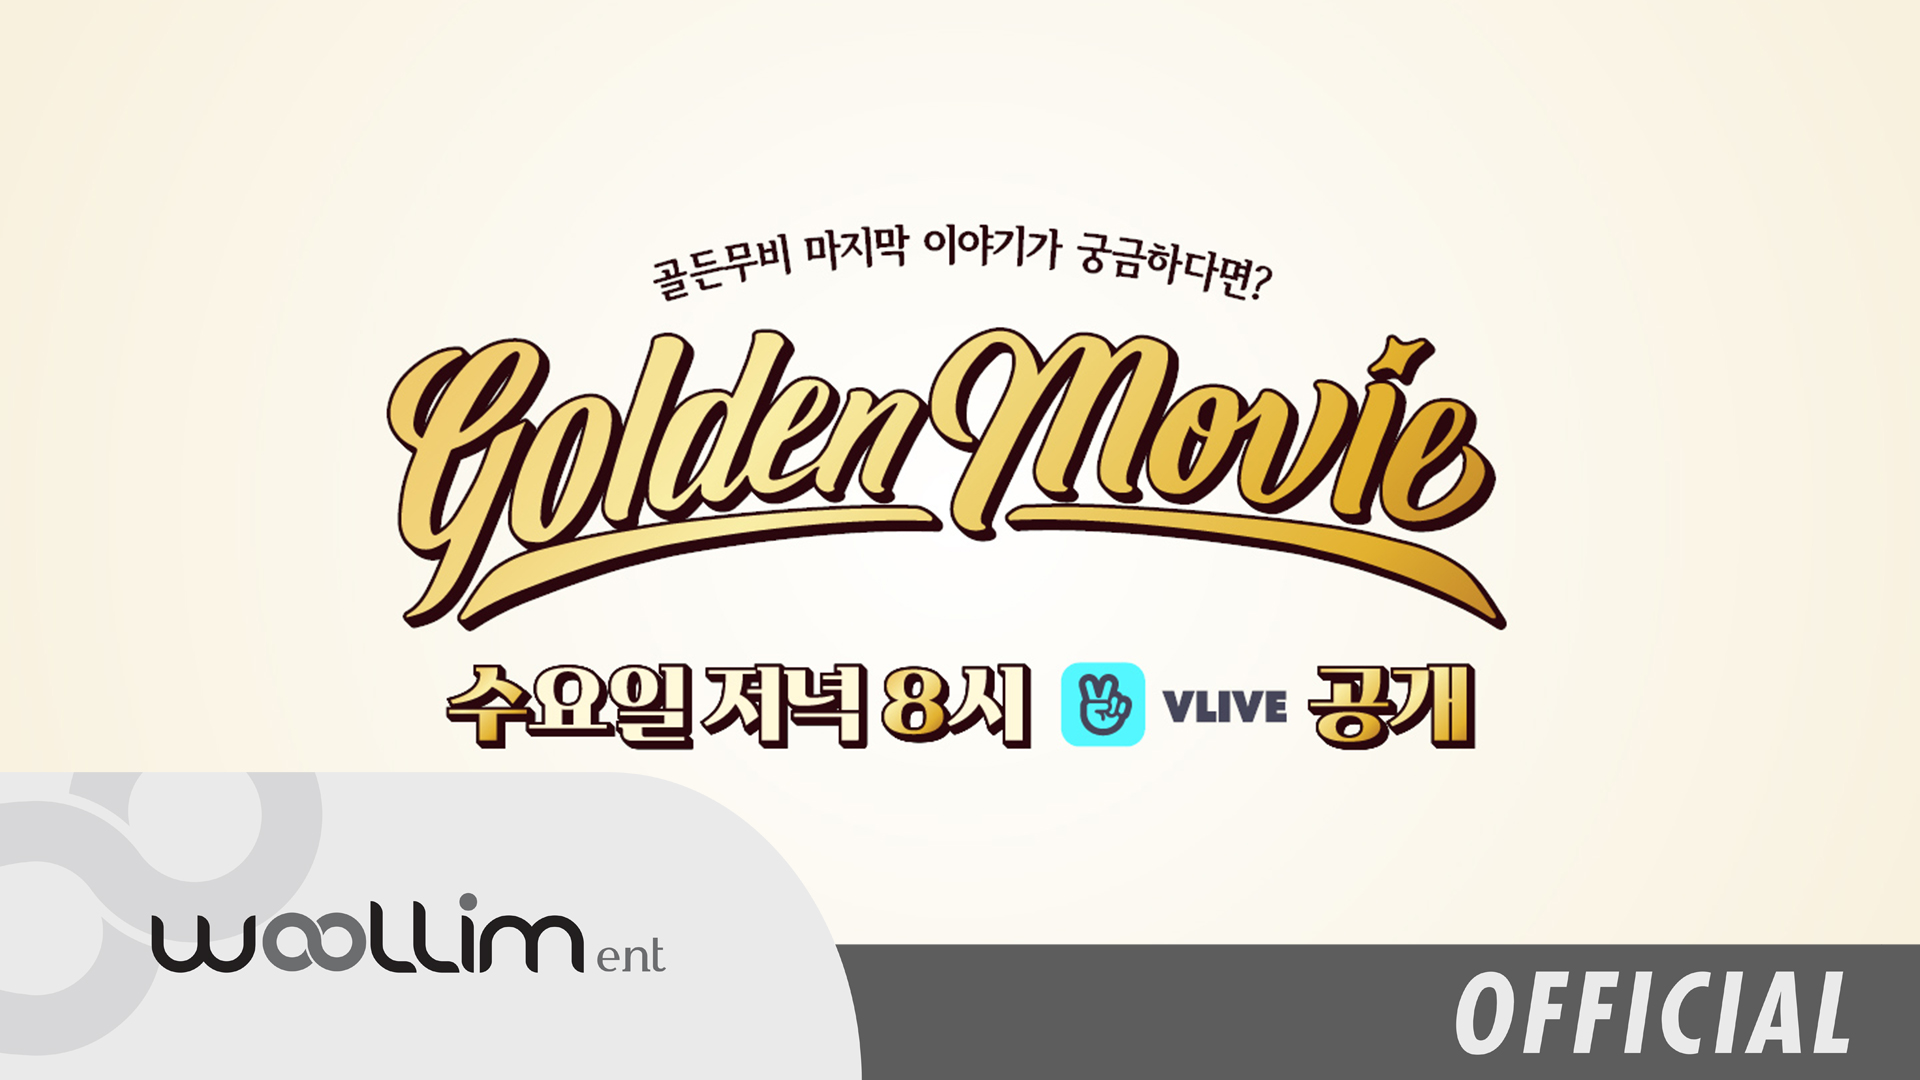 골든차일드(Golden Child) Golden Movie 4화 예고편 (Golden Movie #4 Teaser)